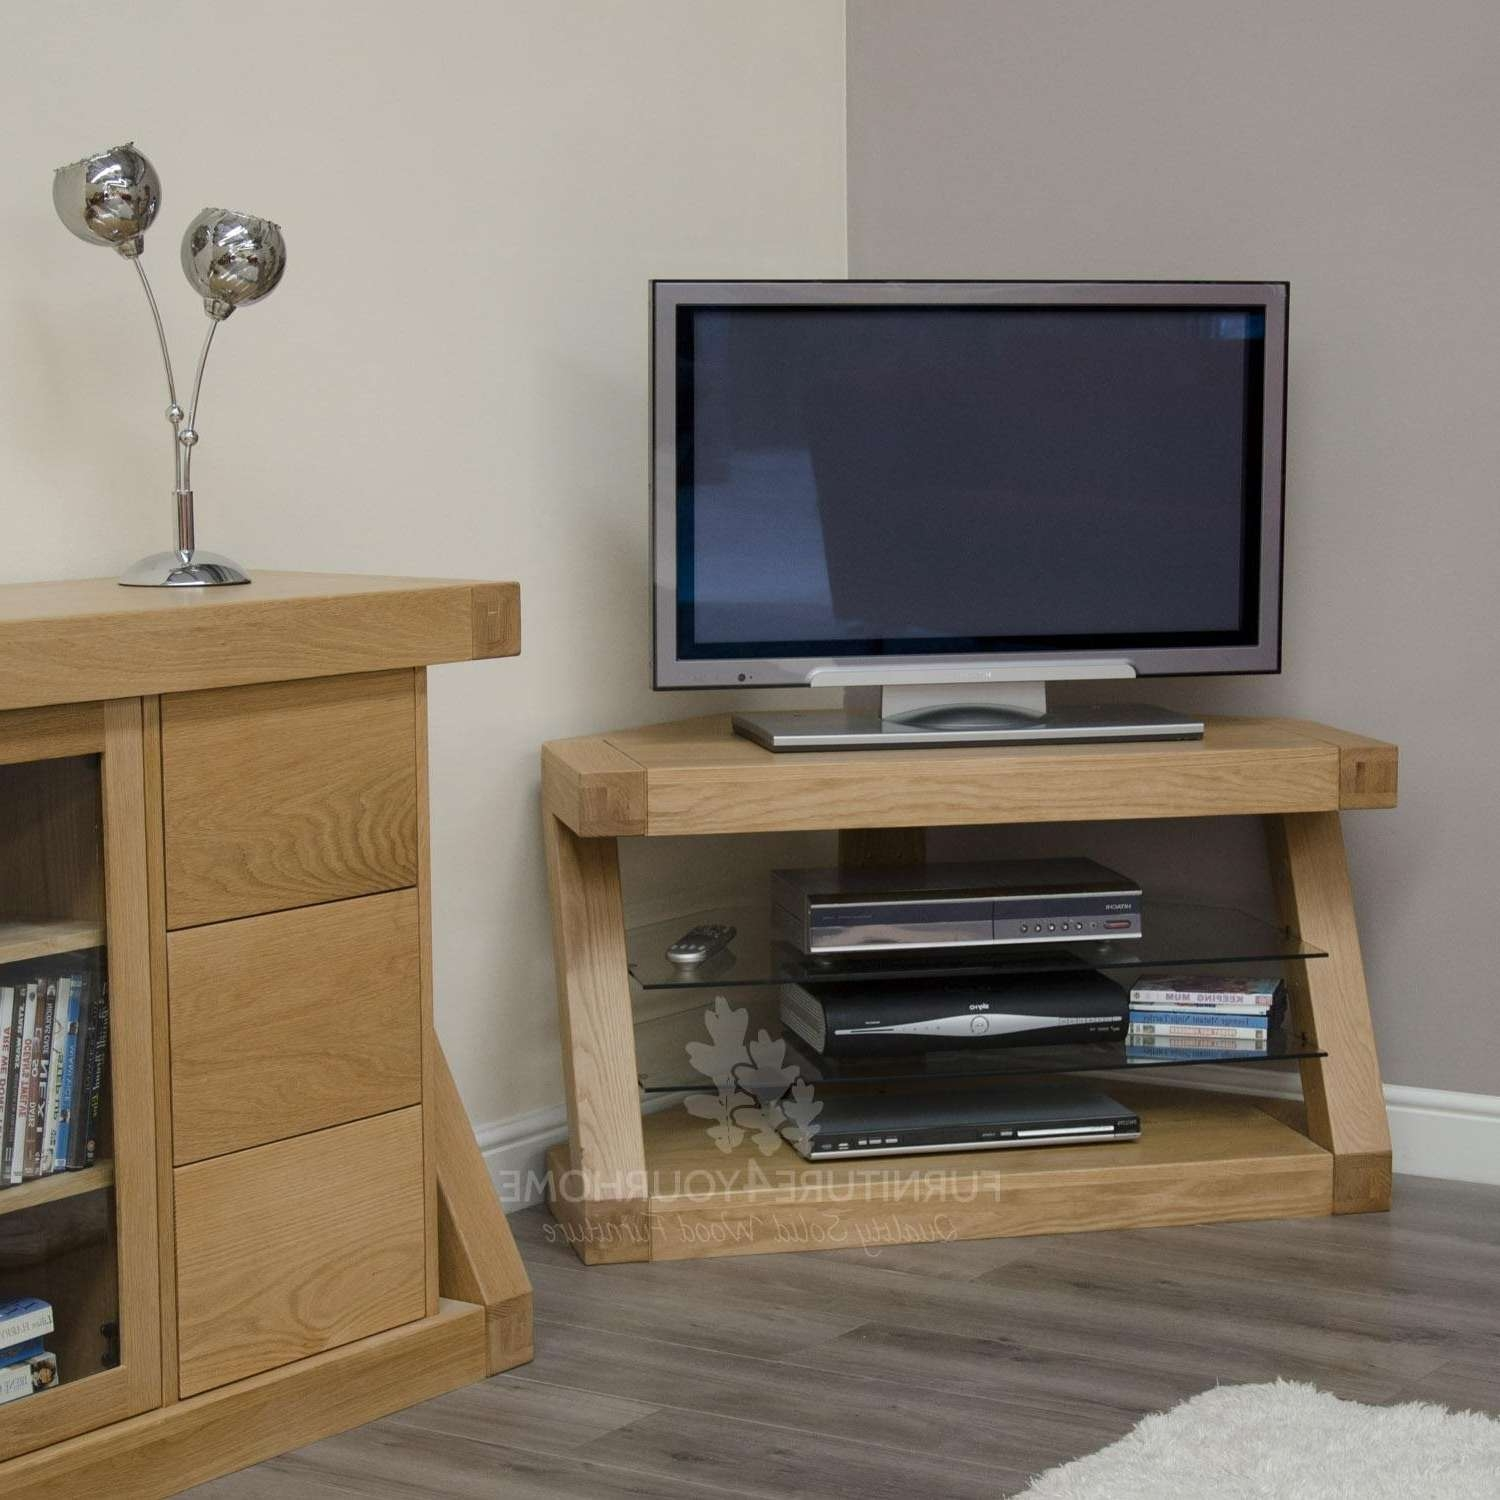 Z Solid Oak Designer Corner Tv Unit | Furniture4Yourhome Throughout Contemporary Corner Tv Stands (View 15 of 15)